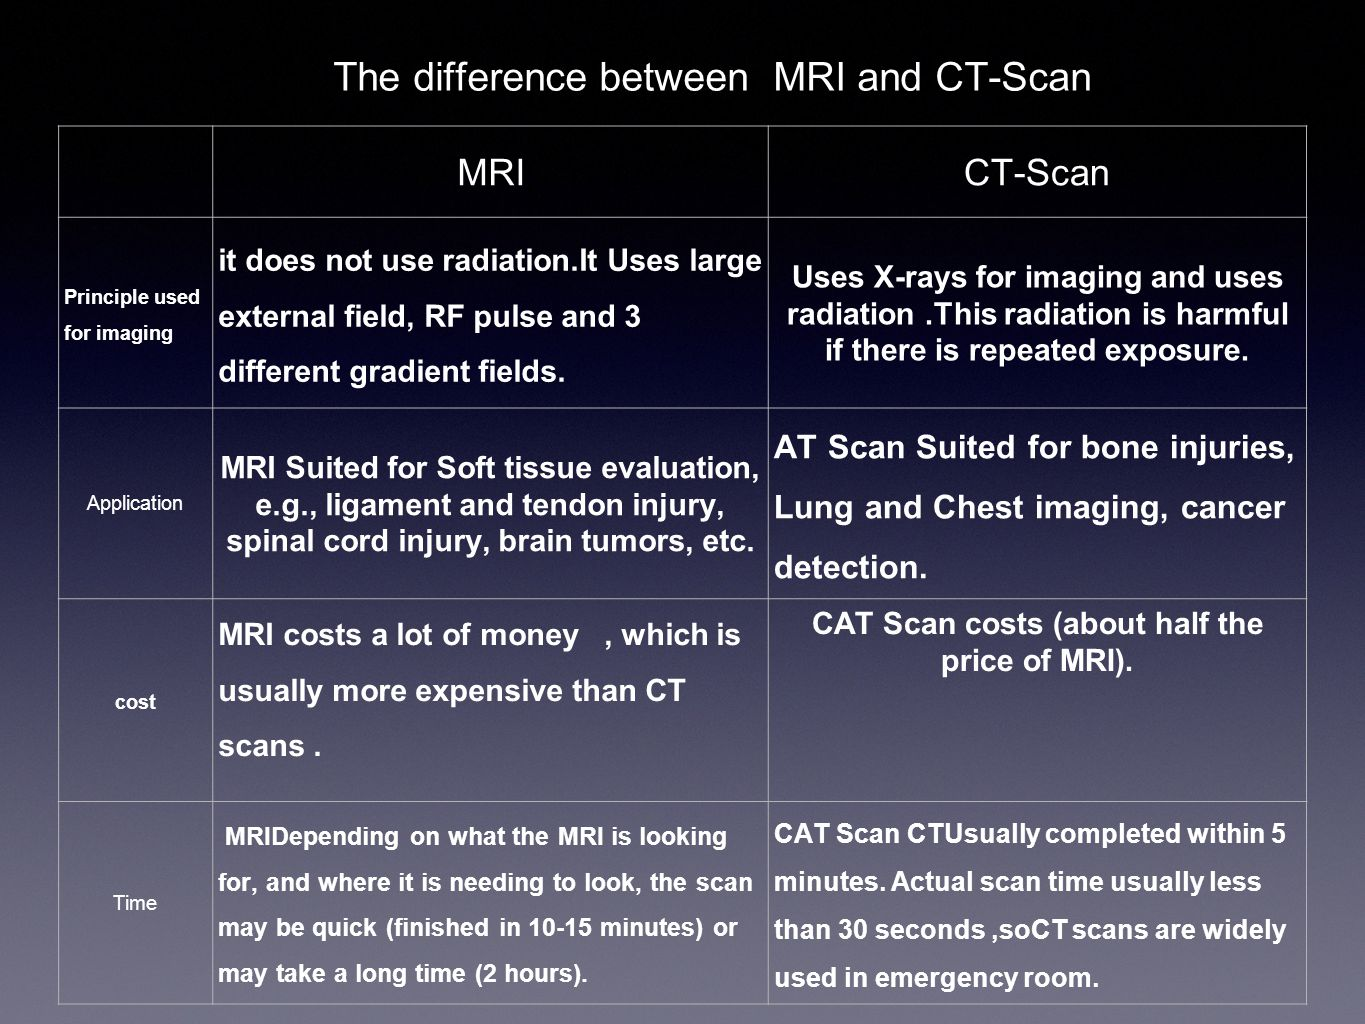 what is the difference between mri and ct scan